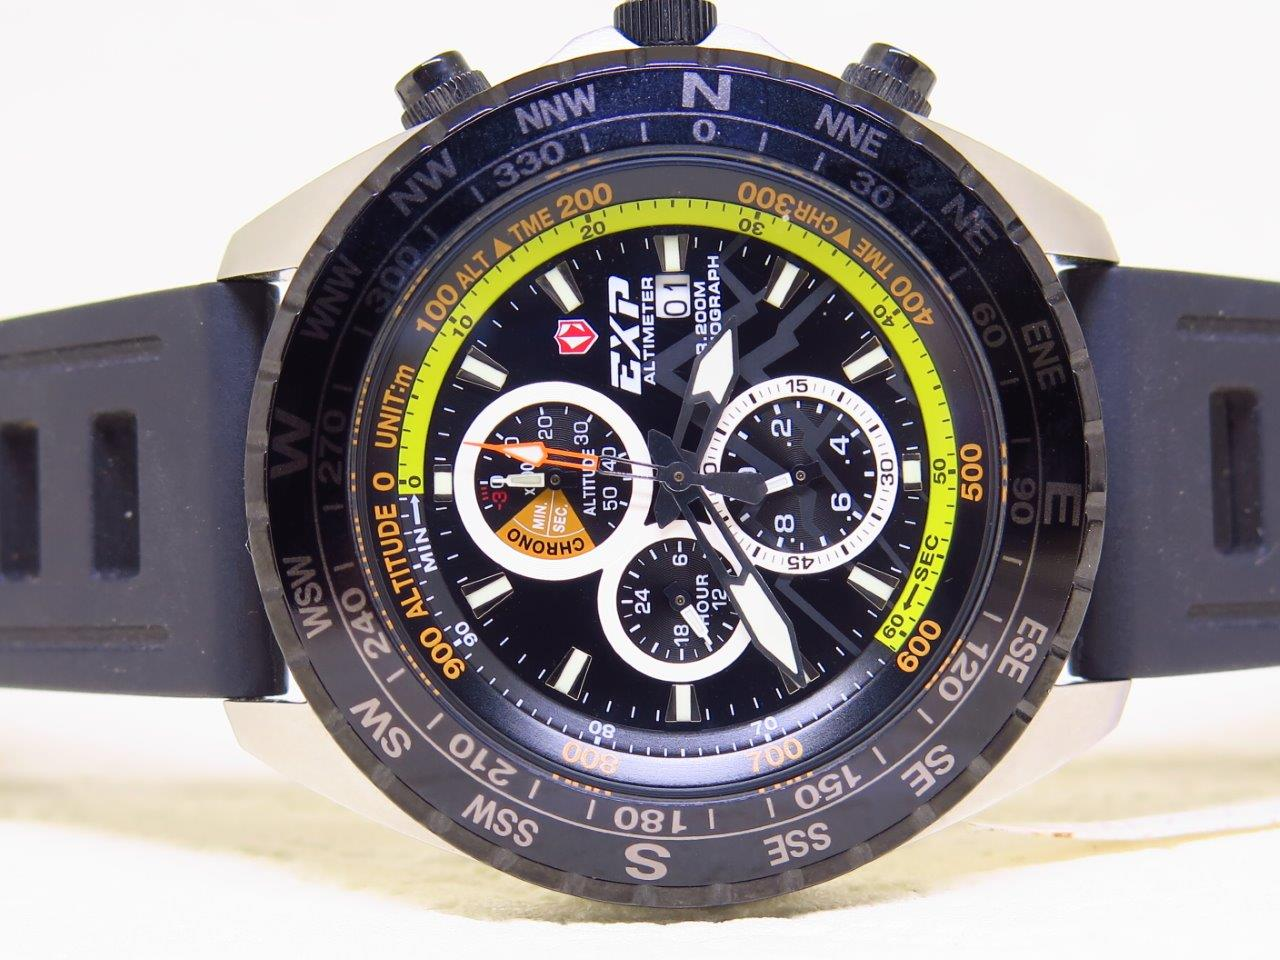 EXP ALTIMETER CHRONOGRAPH 200M with ISROFRANE RUBBER STRAP